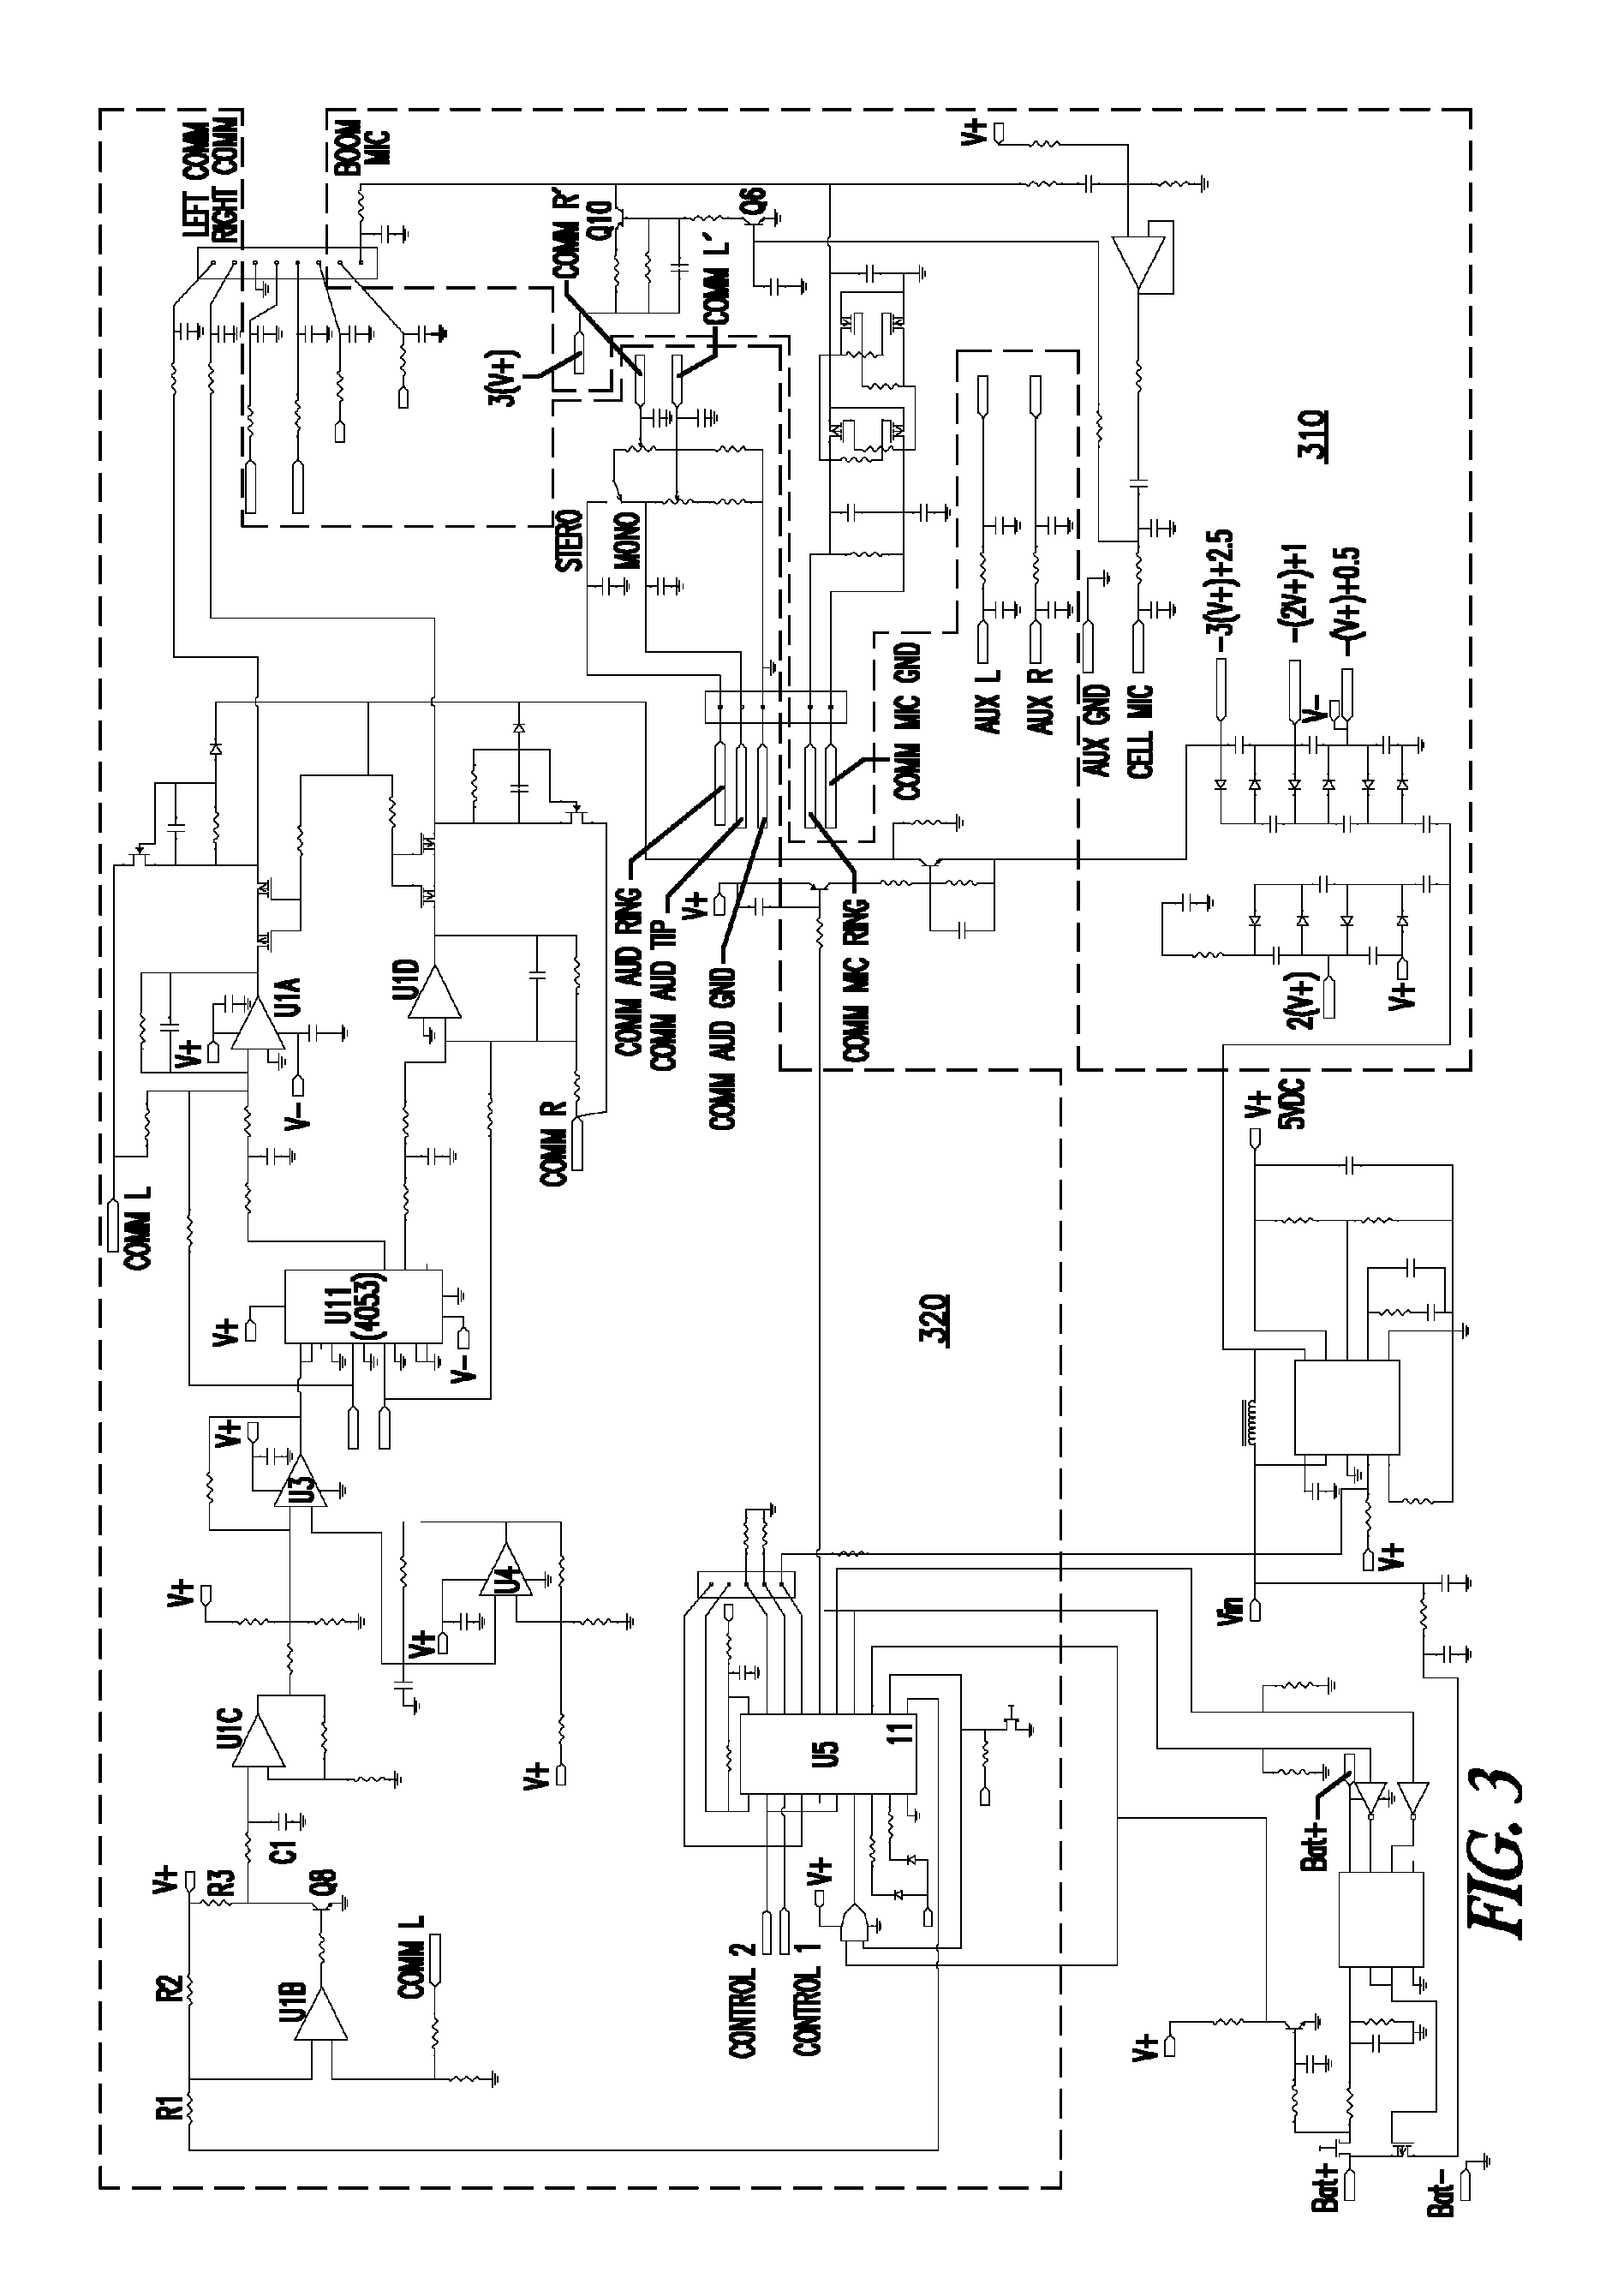 headset circuit diagram